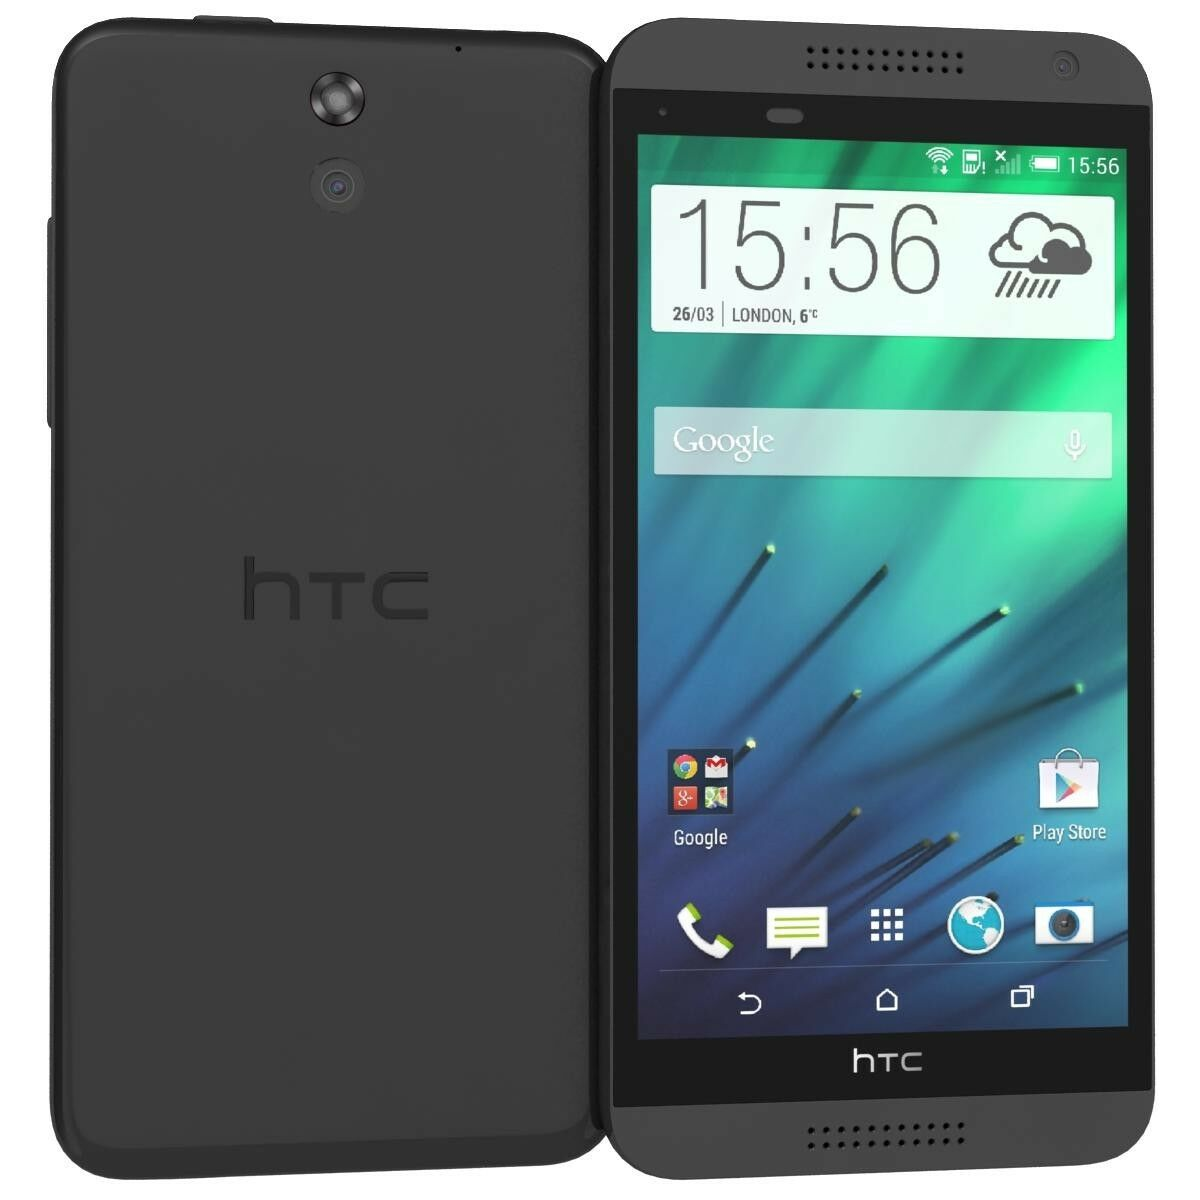 $74.99 - HTC Desire 610 8GB Black AT&T Unlocked Any GSM 4G LTE Android Smartphone ****